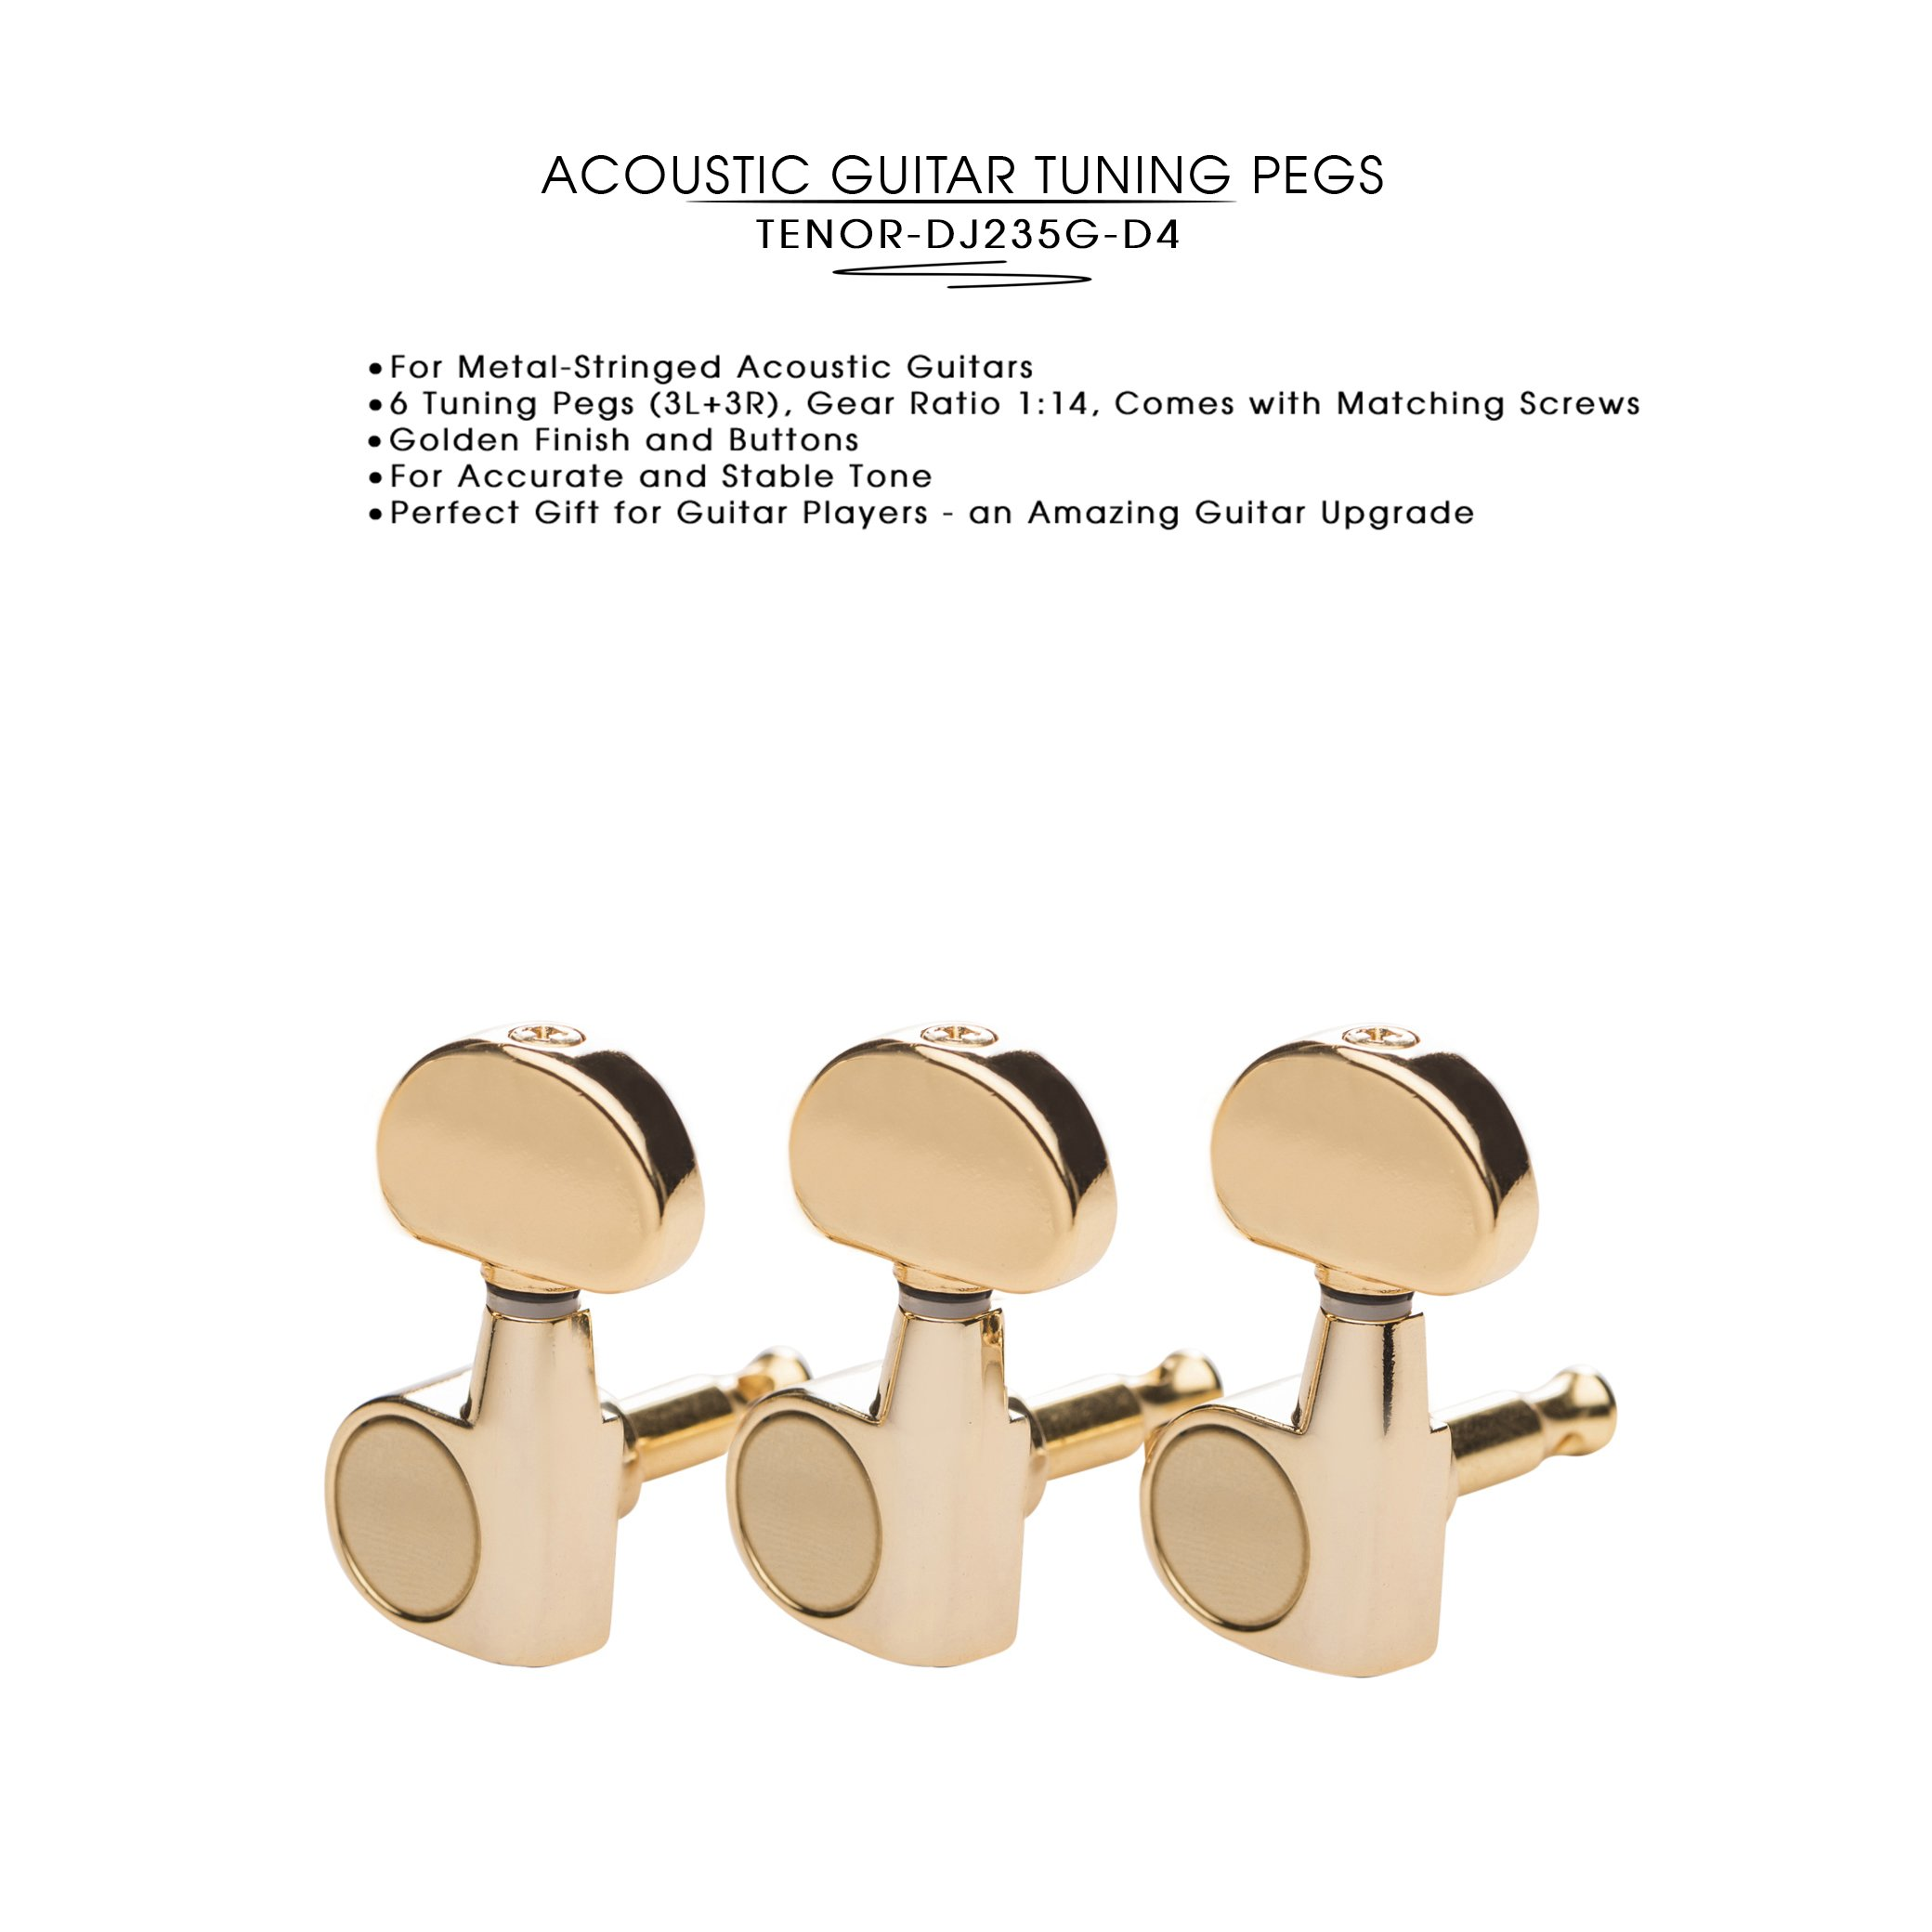 DJ235G-D4 TENOR Acoustic Guitar Tuners, Tuning Key Pegs/Machine Heads for Acoustic Guitar with Gold Plated Finish and Gold Plated Buttons.